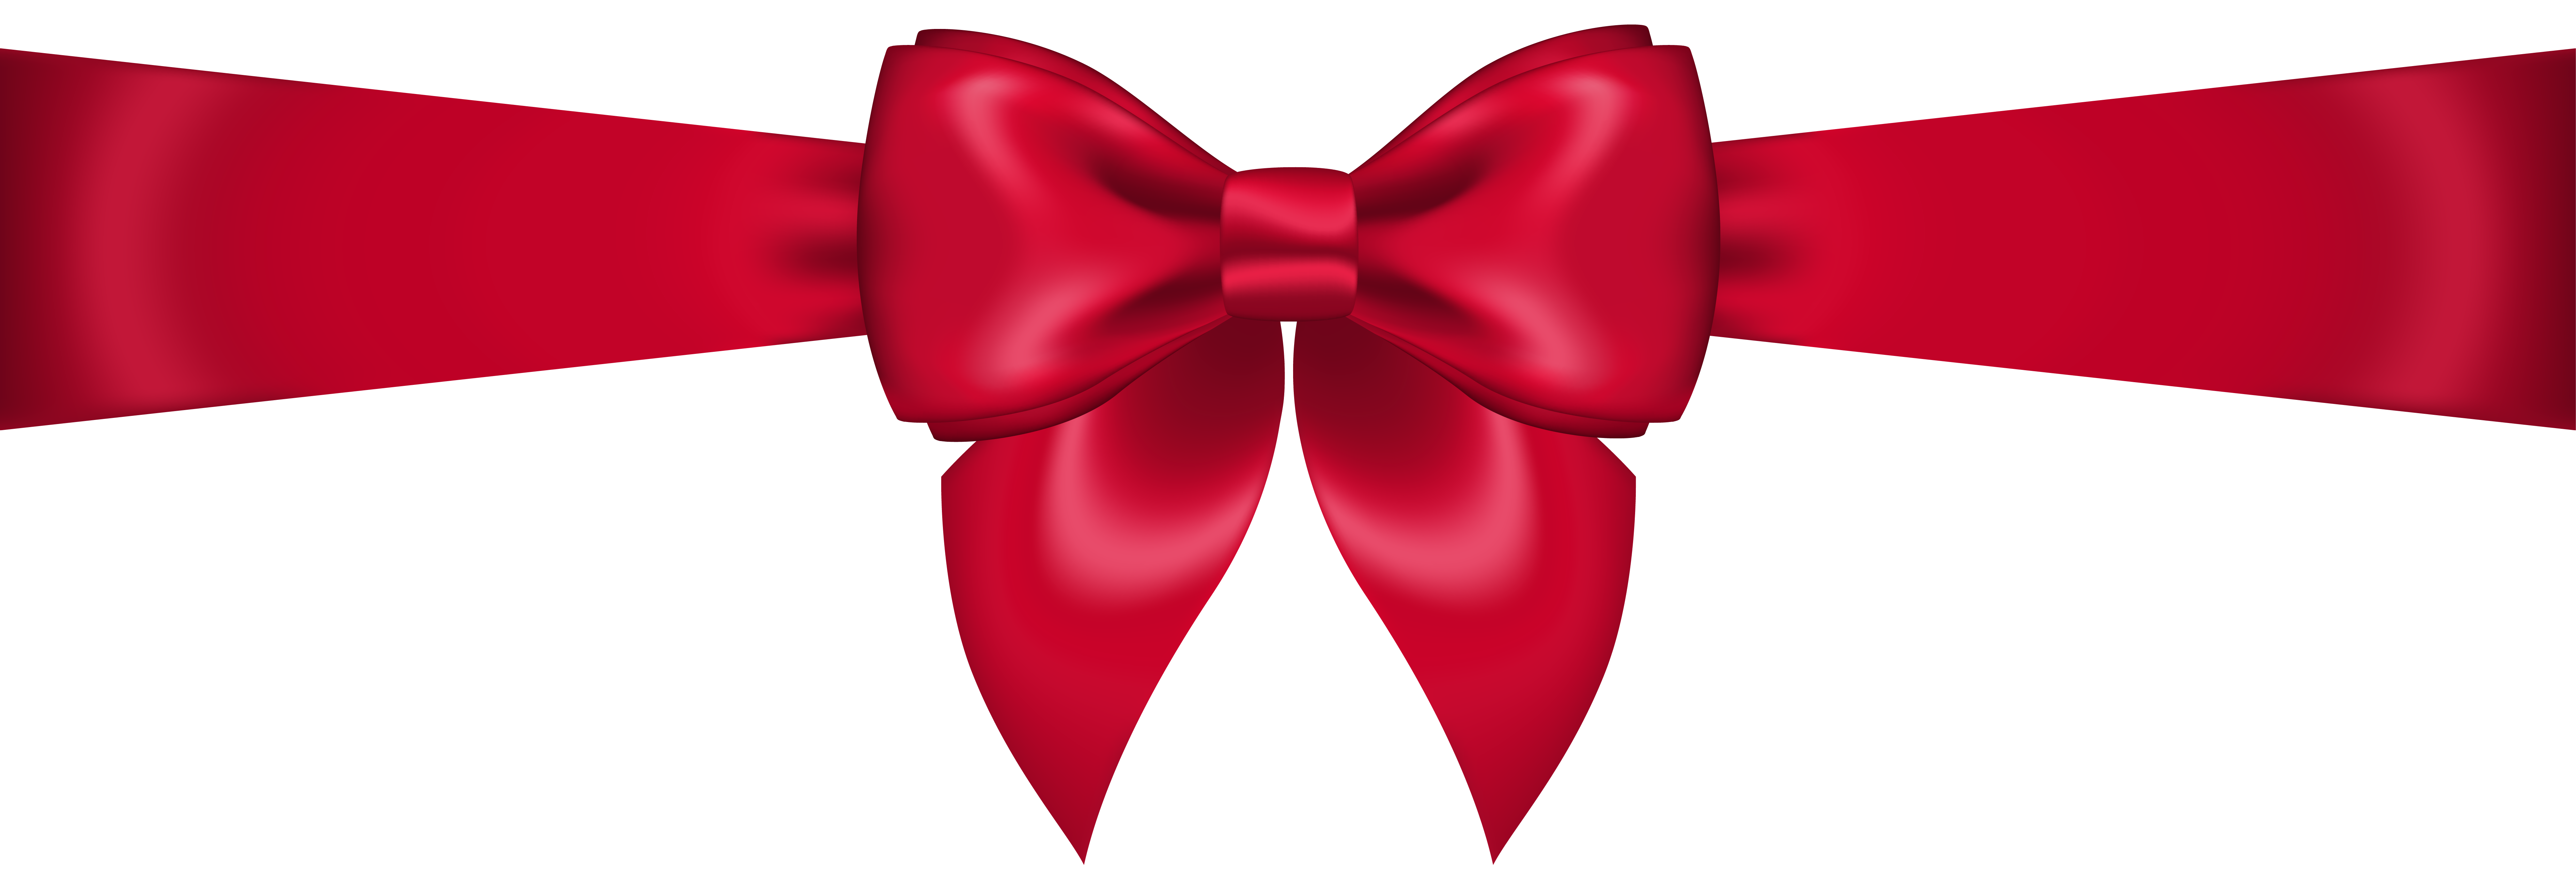 Red bow transparent clip art image